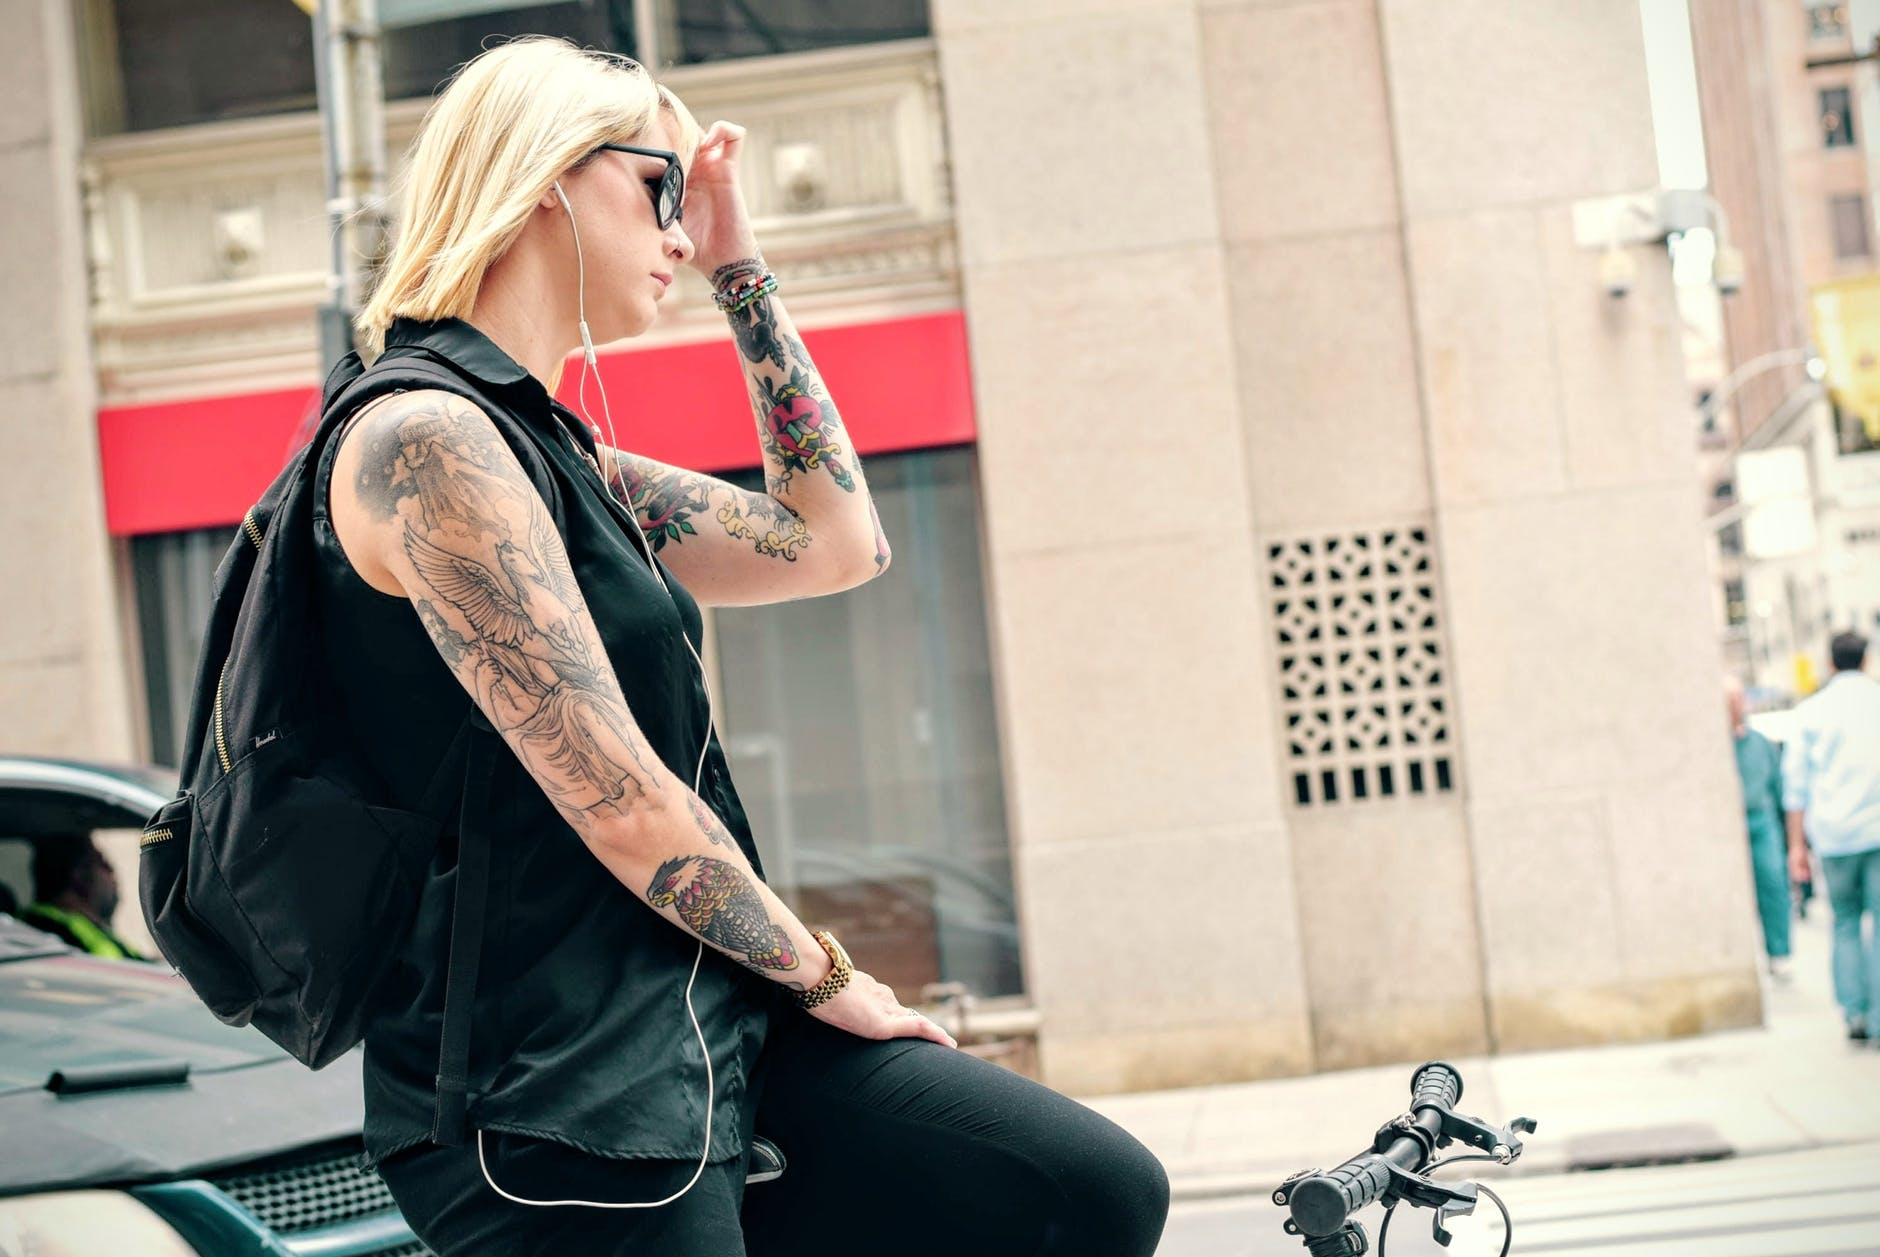 """Photo by Tim Gouw on <a href=""""https://www.pexels.com/photo/tattoos-bike-cycle-girl-26138/"""" rel=""""nofollow"""">Pexels.com</a>"""